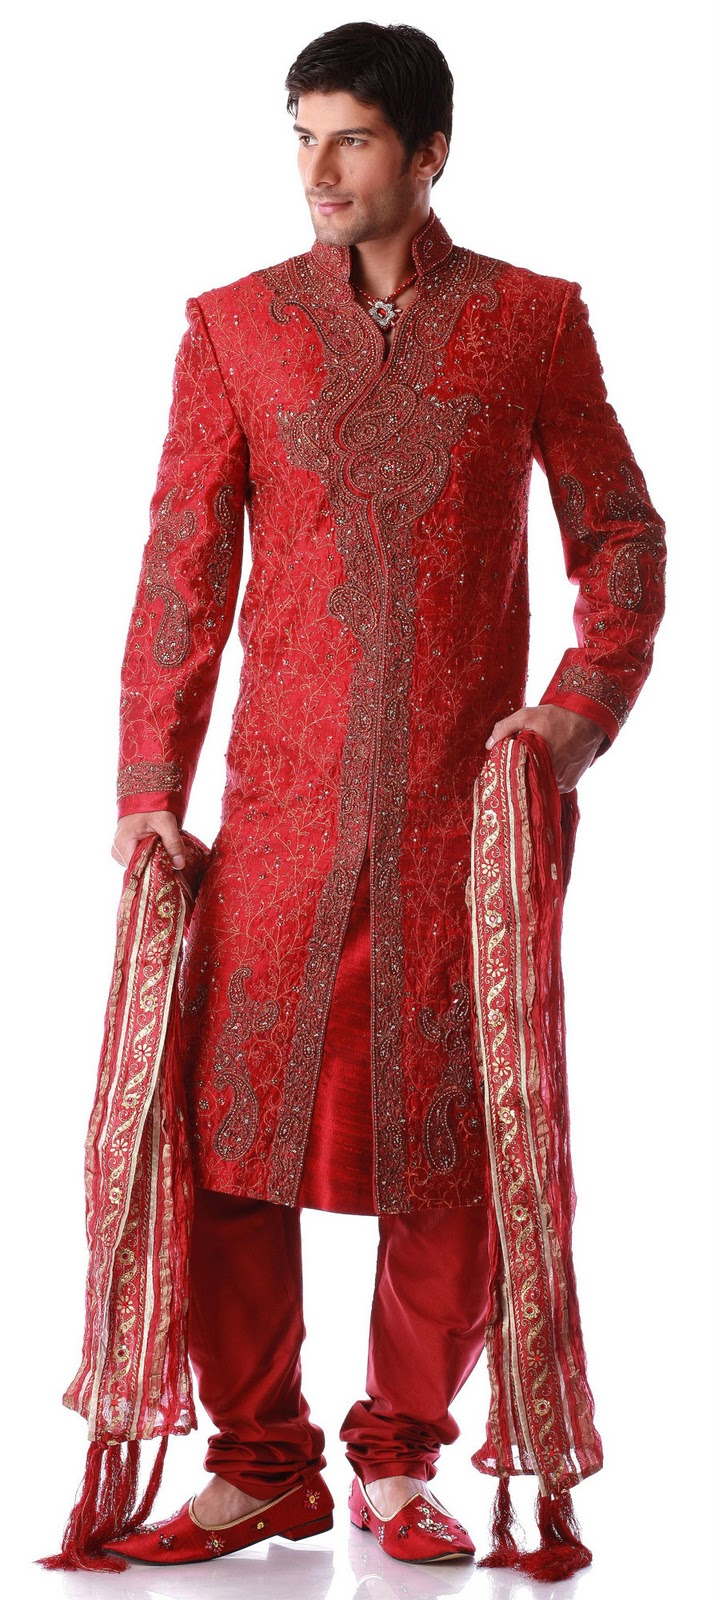 men fashion dresses red dragon neck sherwani   men s